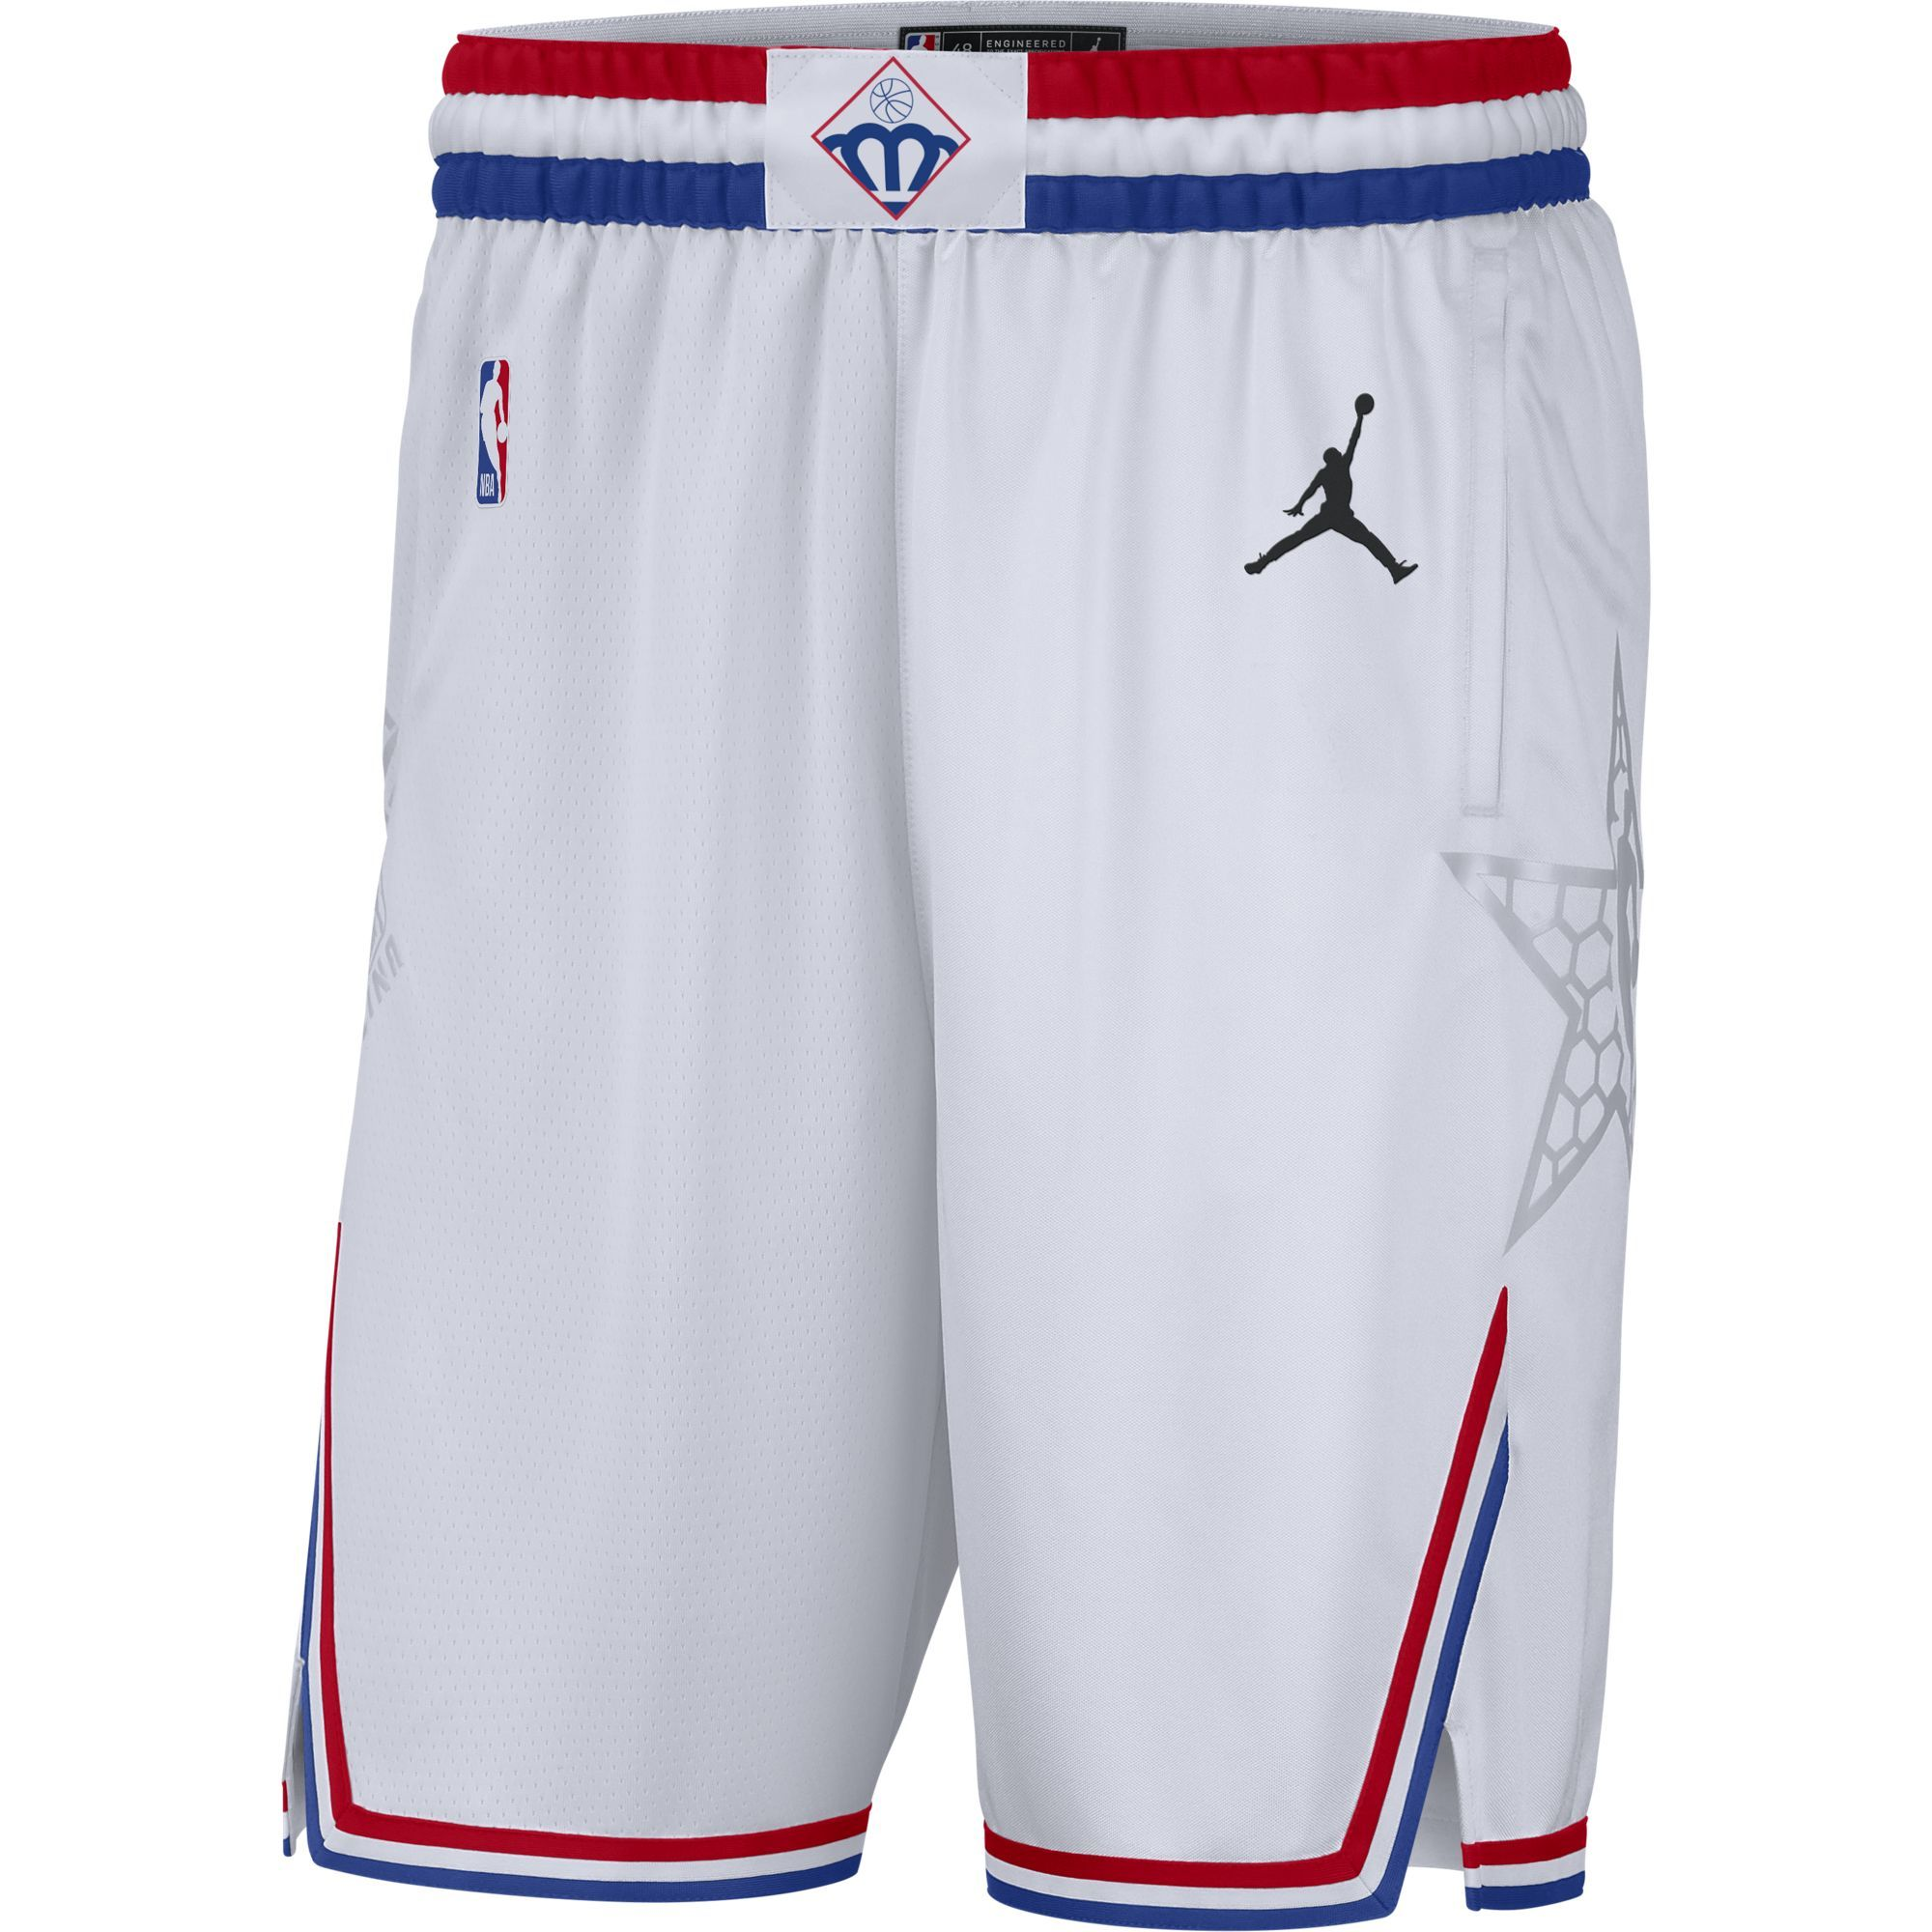 2019 NBA All-Star White Jordan Brand Swingman Shorts